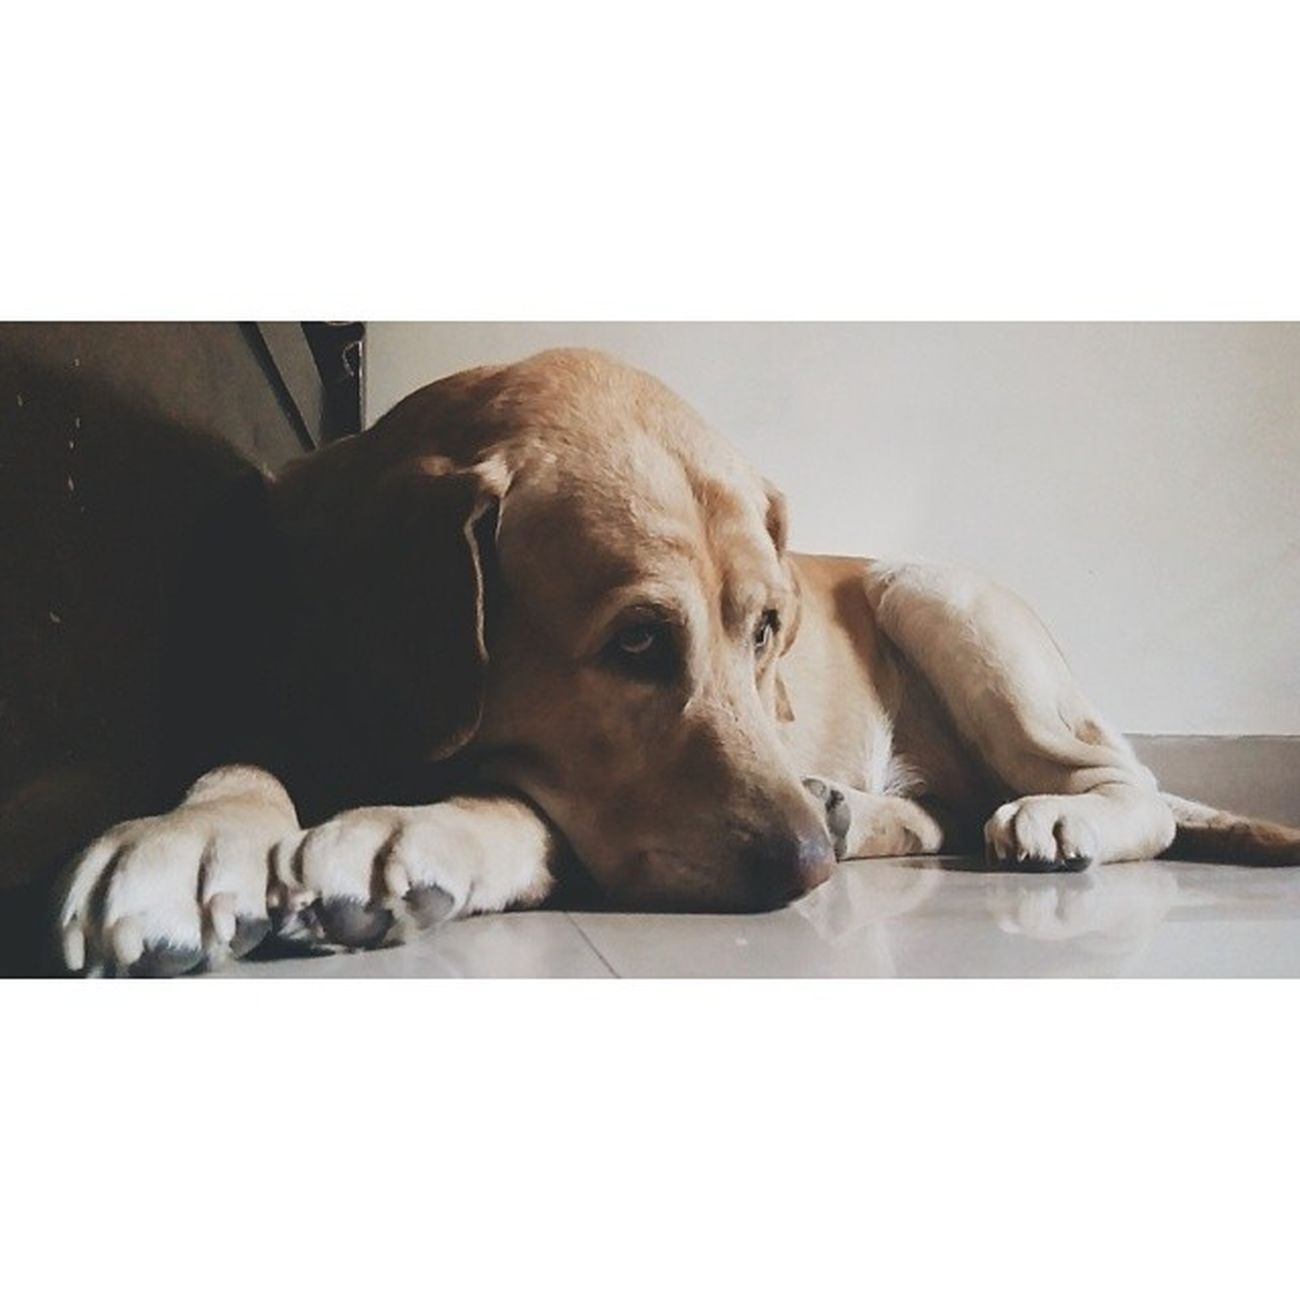 Power outages = Upset Ozzy Weeklyfluff Instapets Instamood Petsofinstagram Labradorsofinstagram Igers Igersindia Love VSCO Vscophile Vscocam Squaredroid